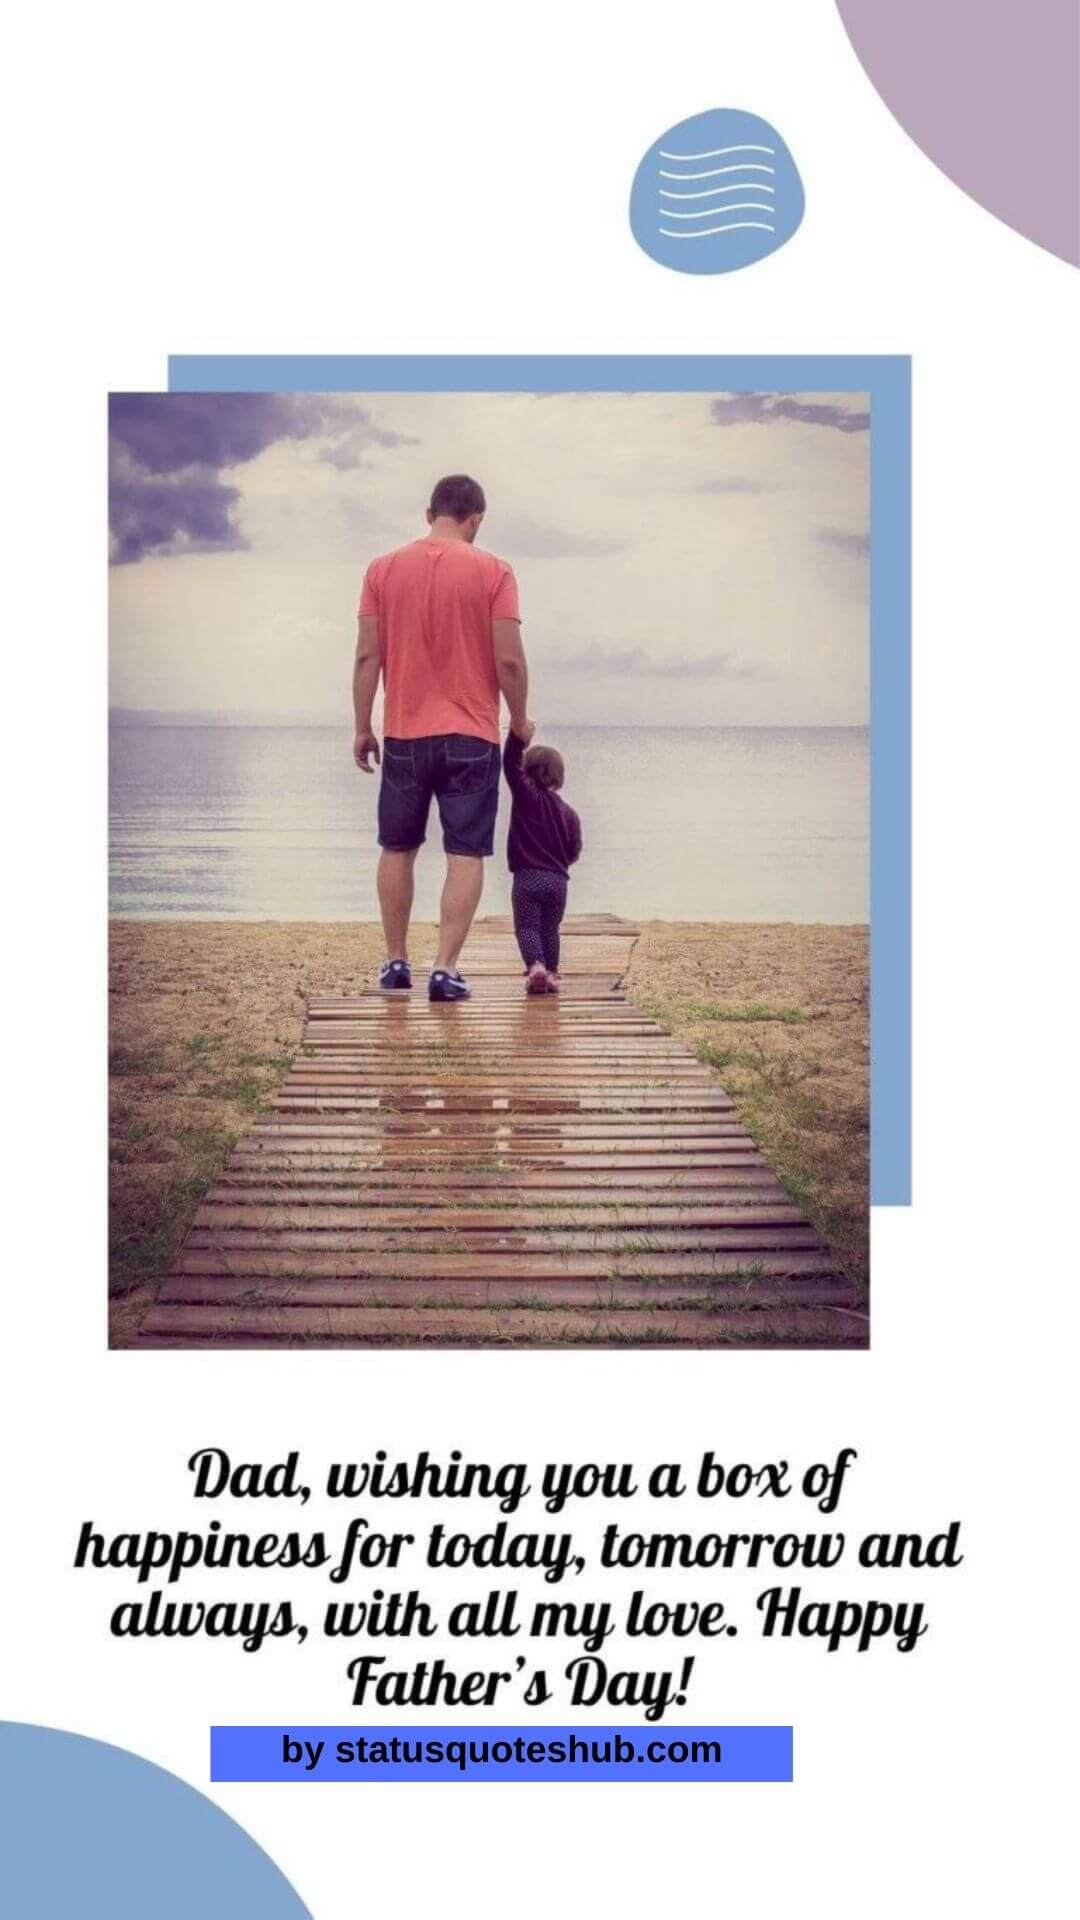 Father's day wish